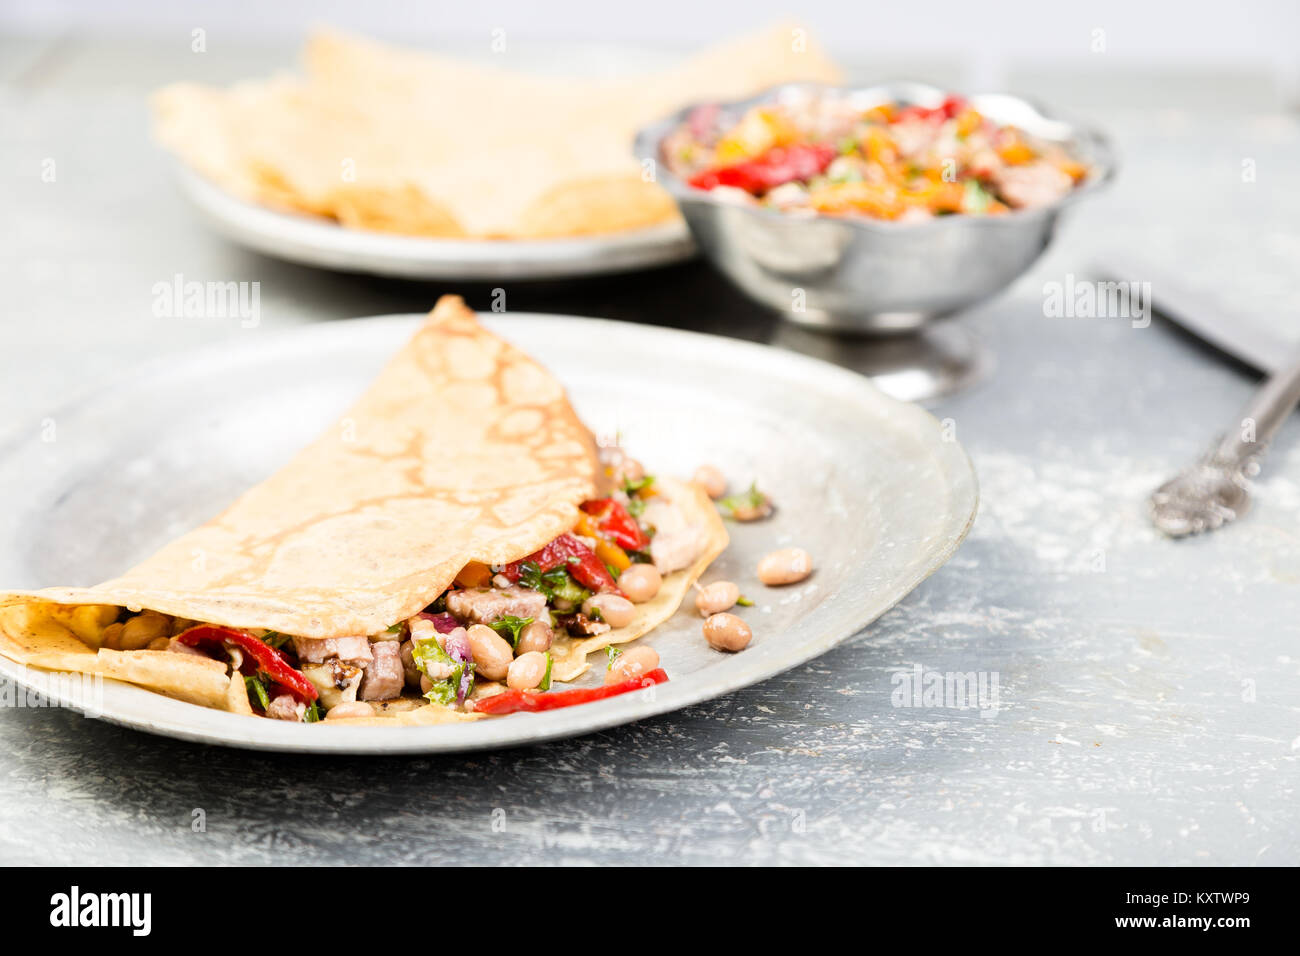 Savoury Buckwheat Pancake with White Beans, Red and Yellow Bell Pepper, Parsley and Chicken. Mexican Quesadilla. Stock Photo